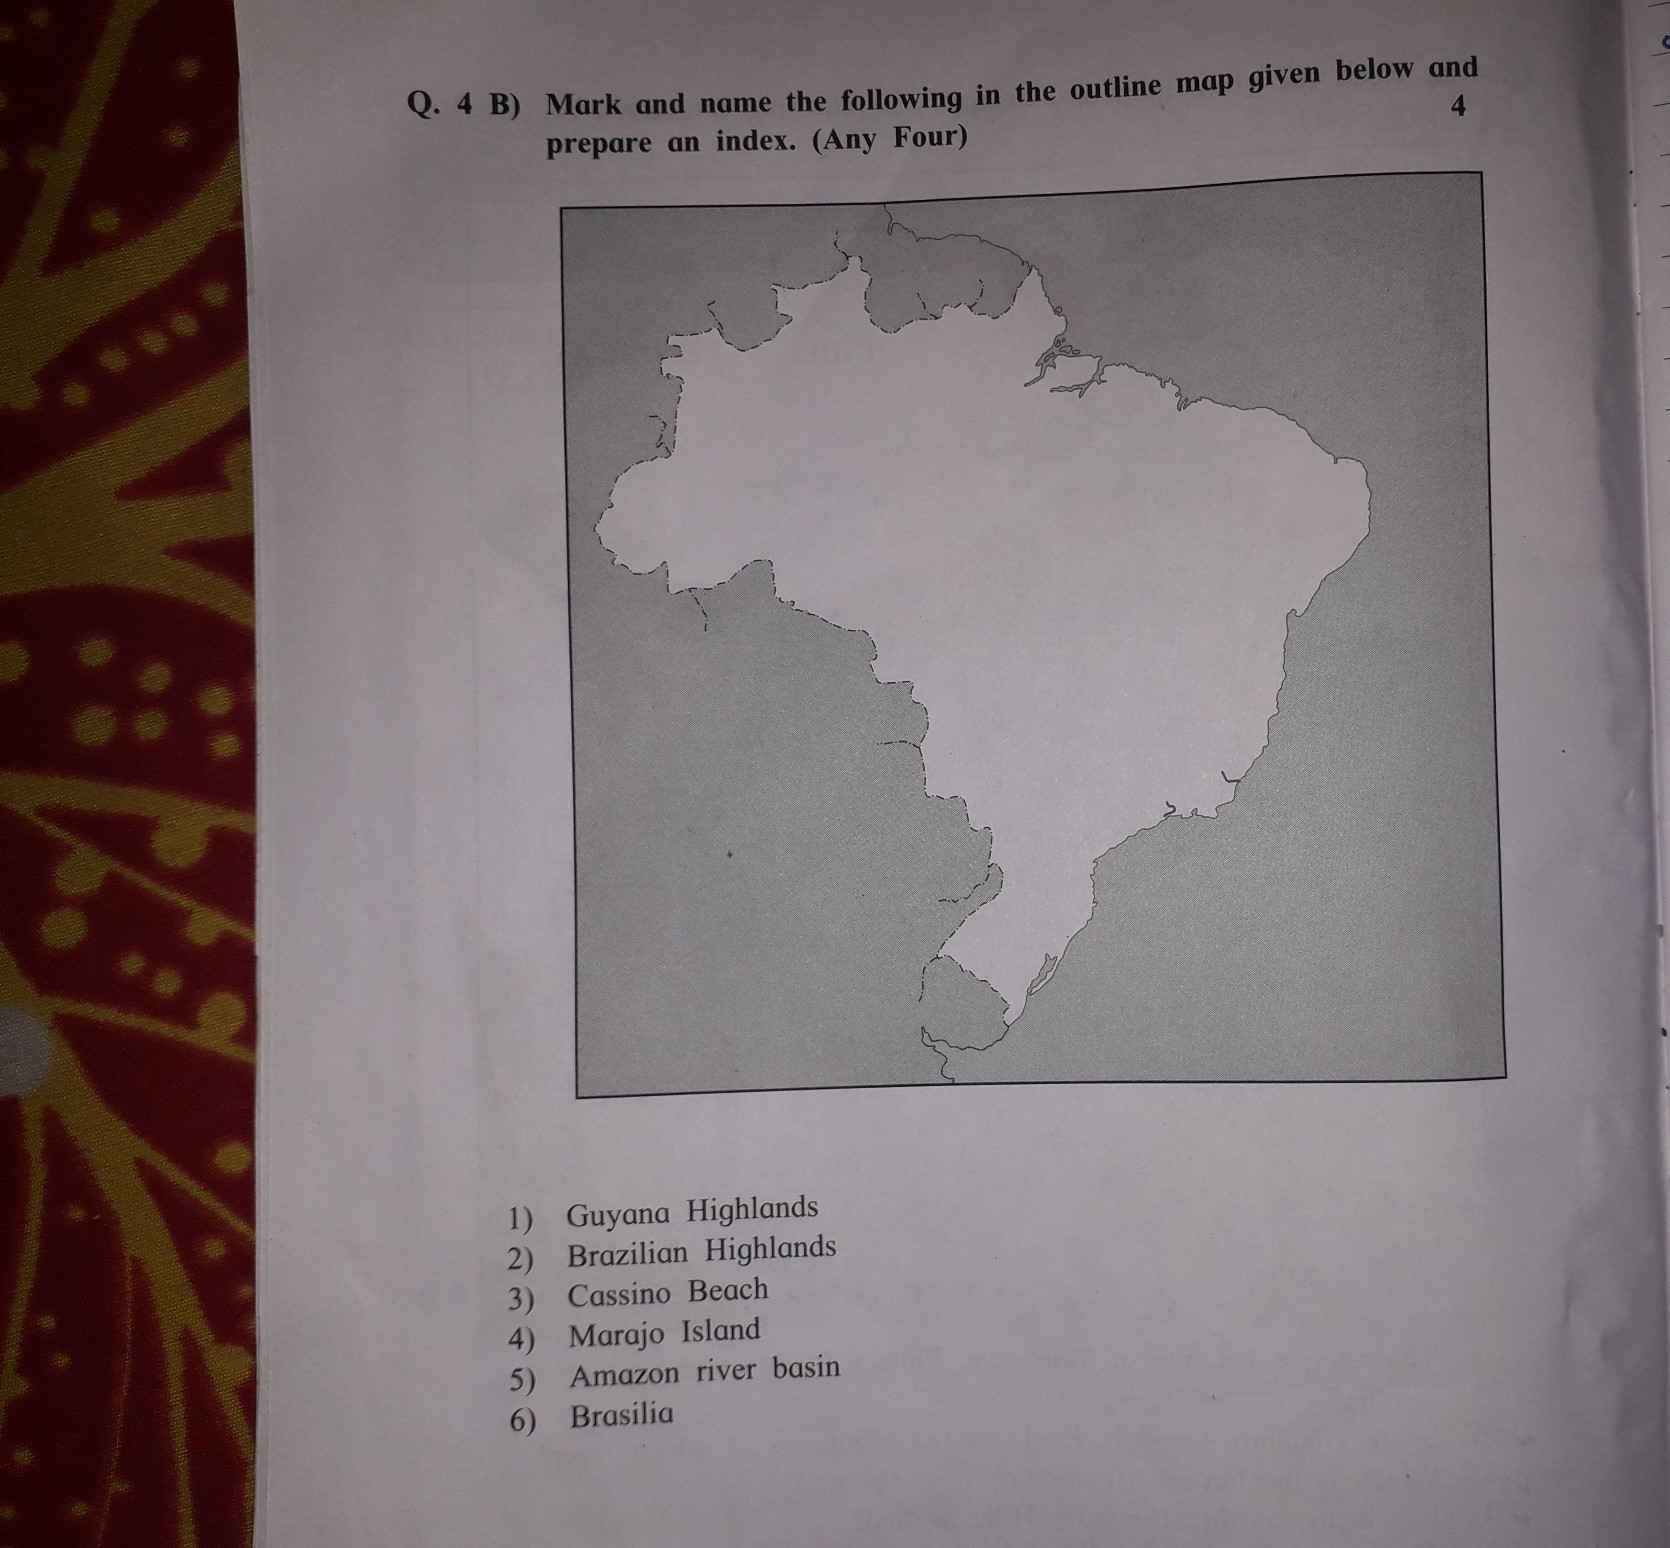 mark and name the following in the outline map given below ...